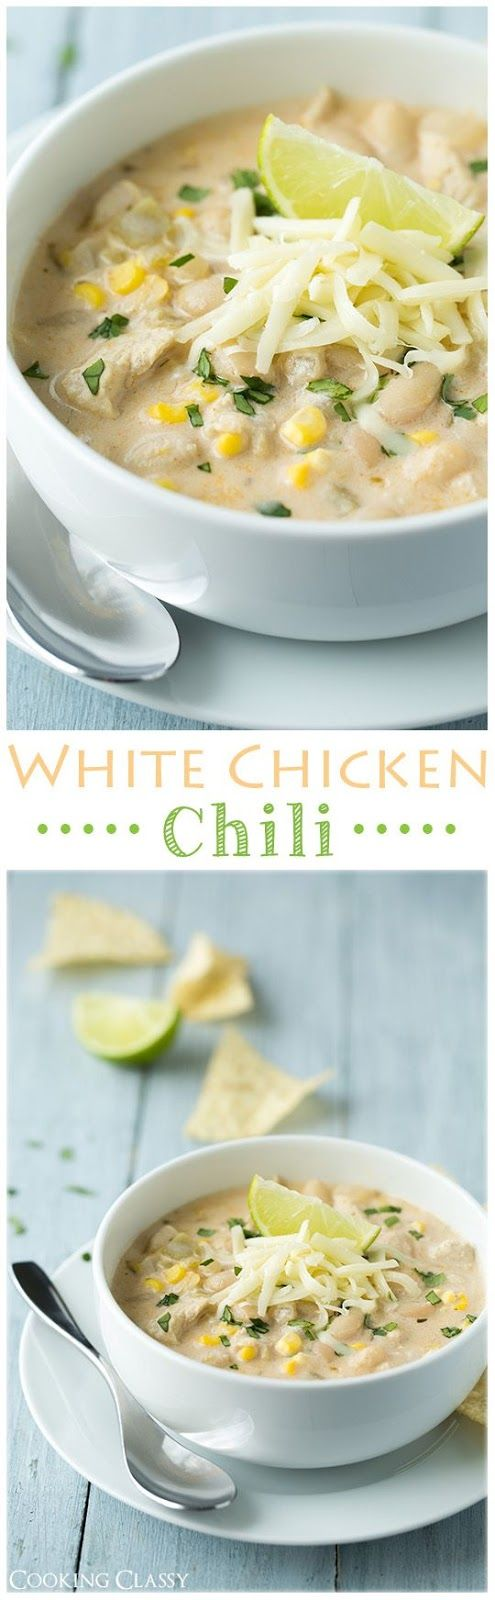 White Chicken Chili Recipe Chicken: https://www.zayconfoods.com/campaign/26